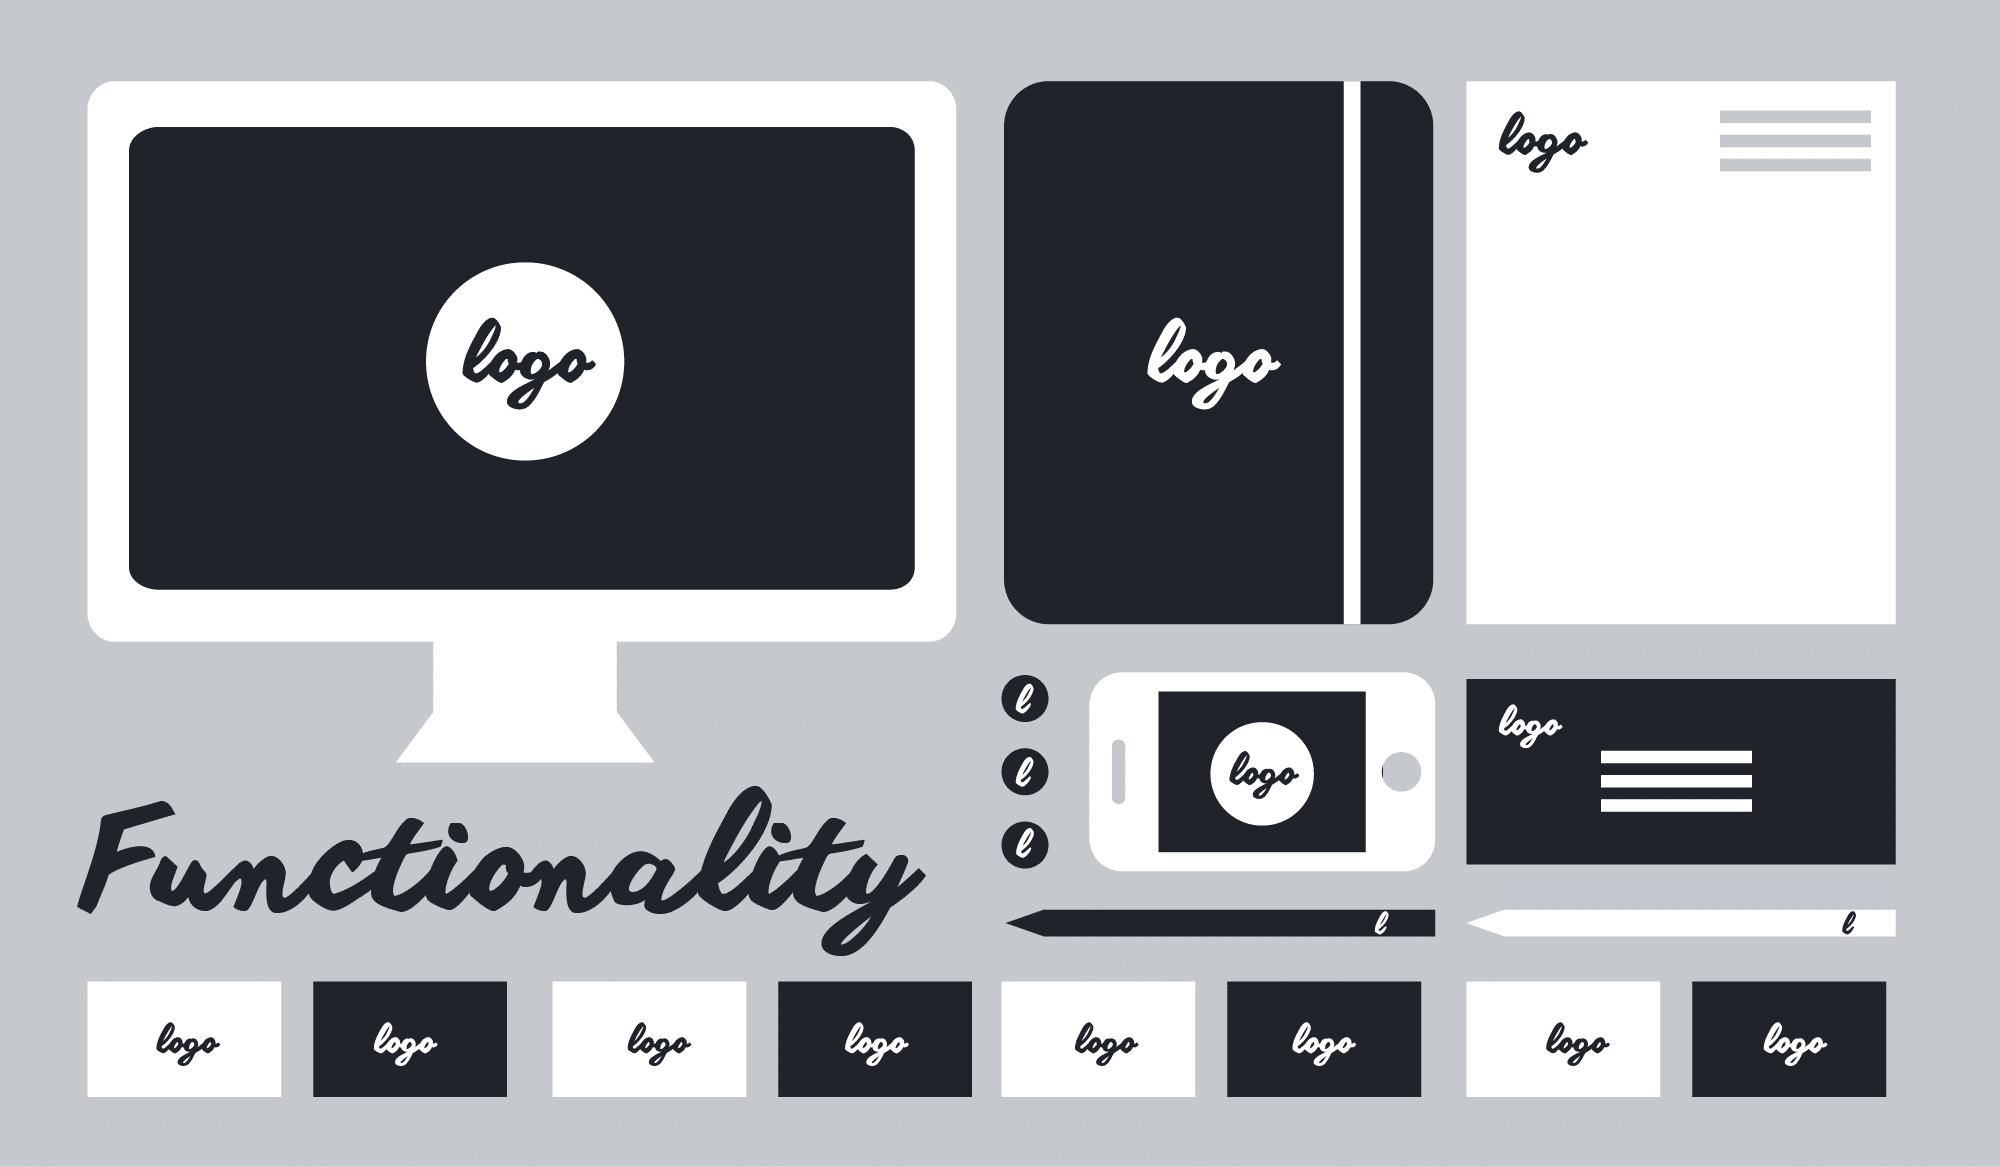 Illustration about the importance of functionality for logos.